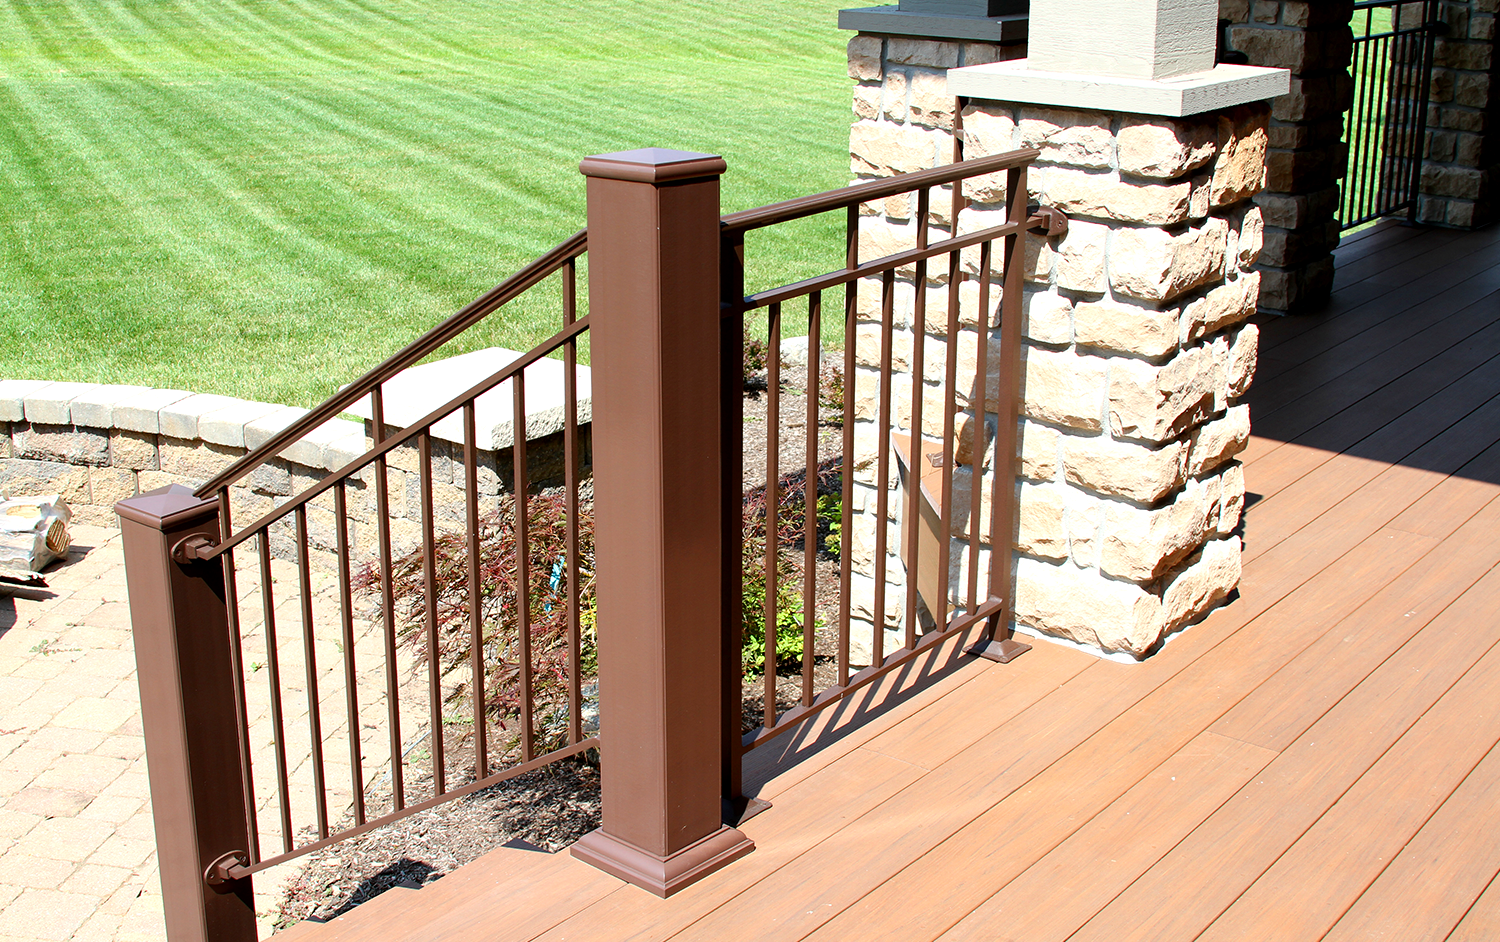 Stair Railing from Deck